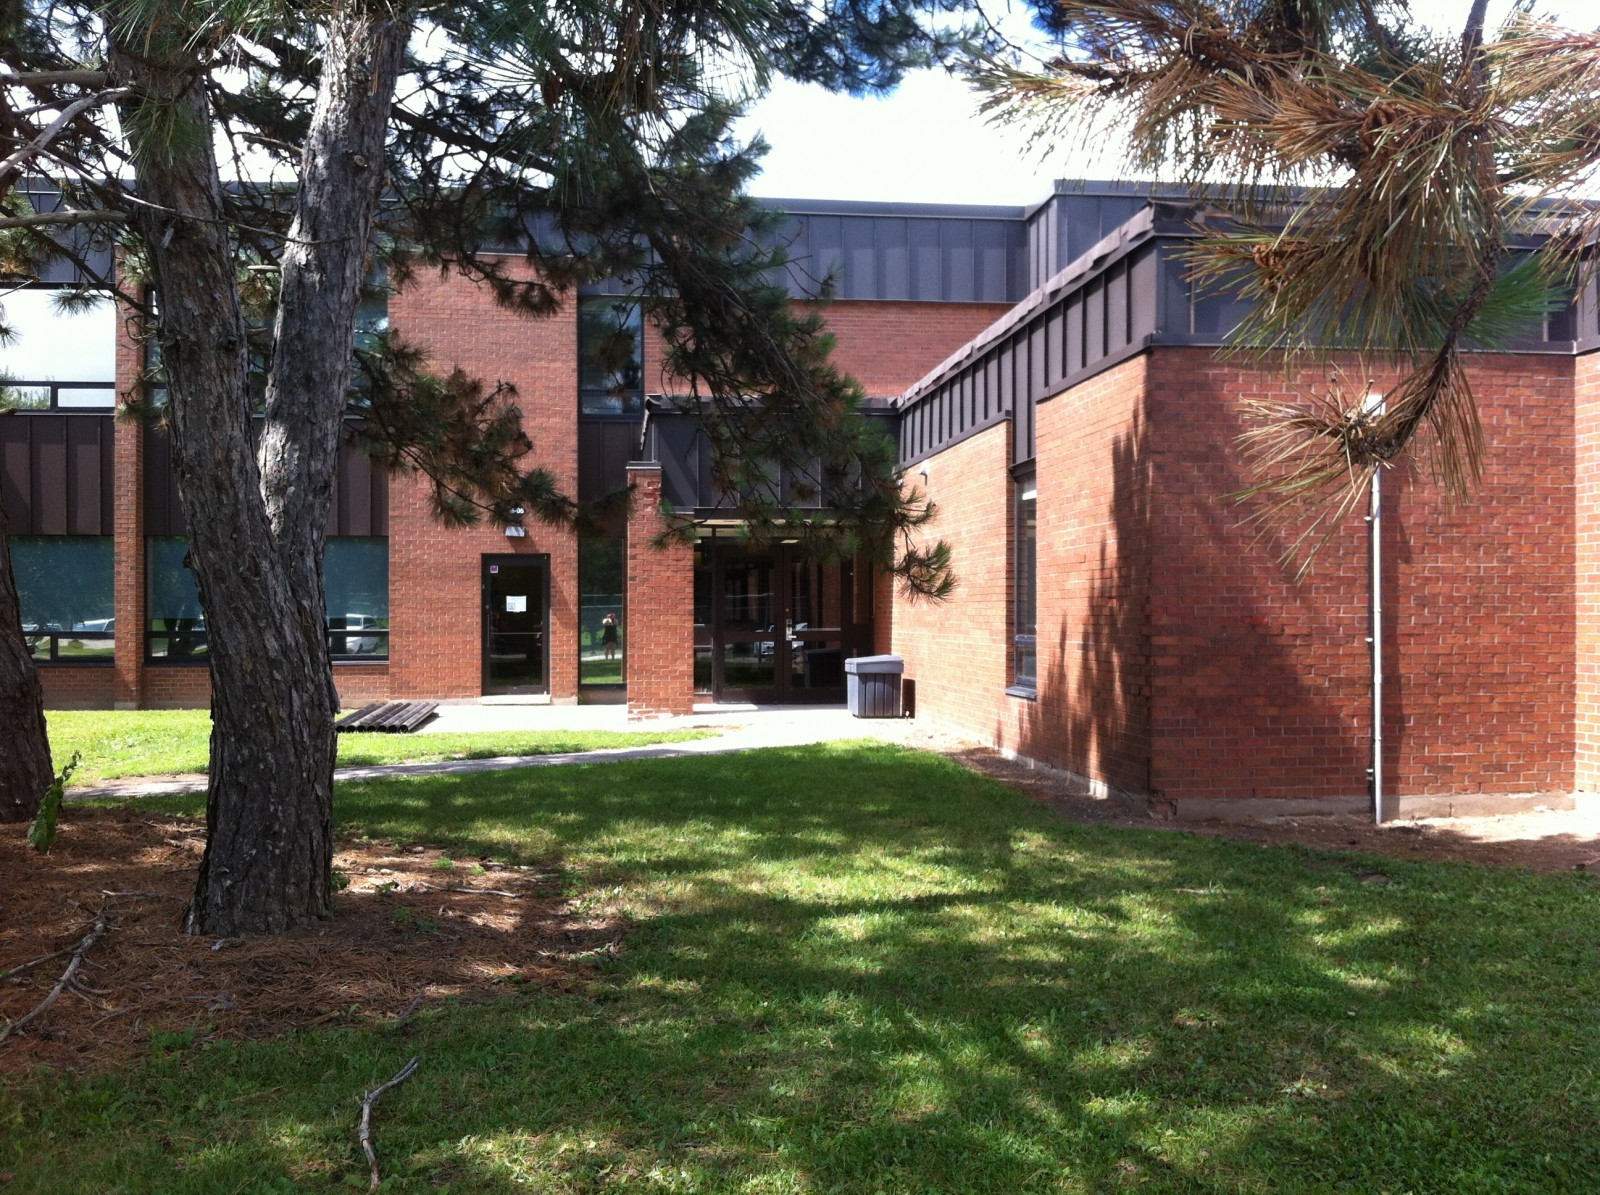 Robarts School for the Deaf involved in class action lawsuit